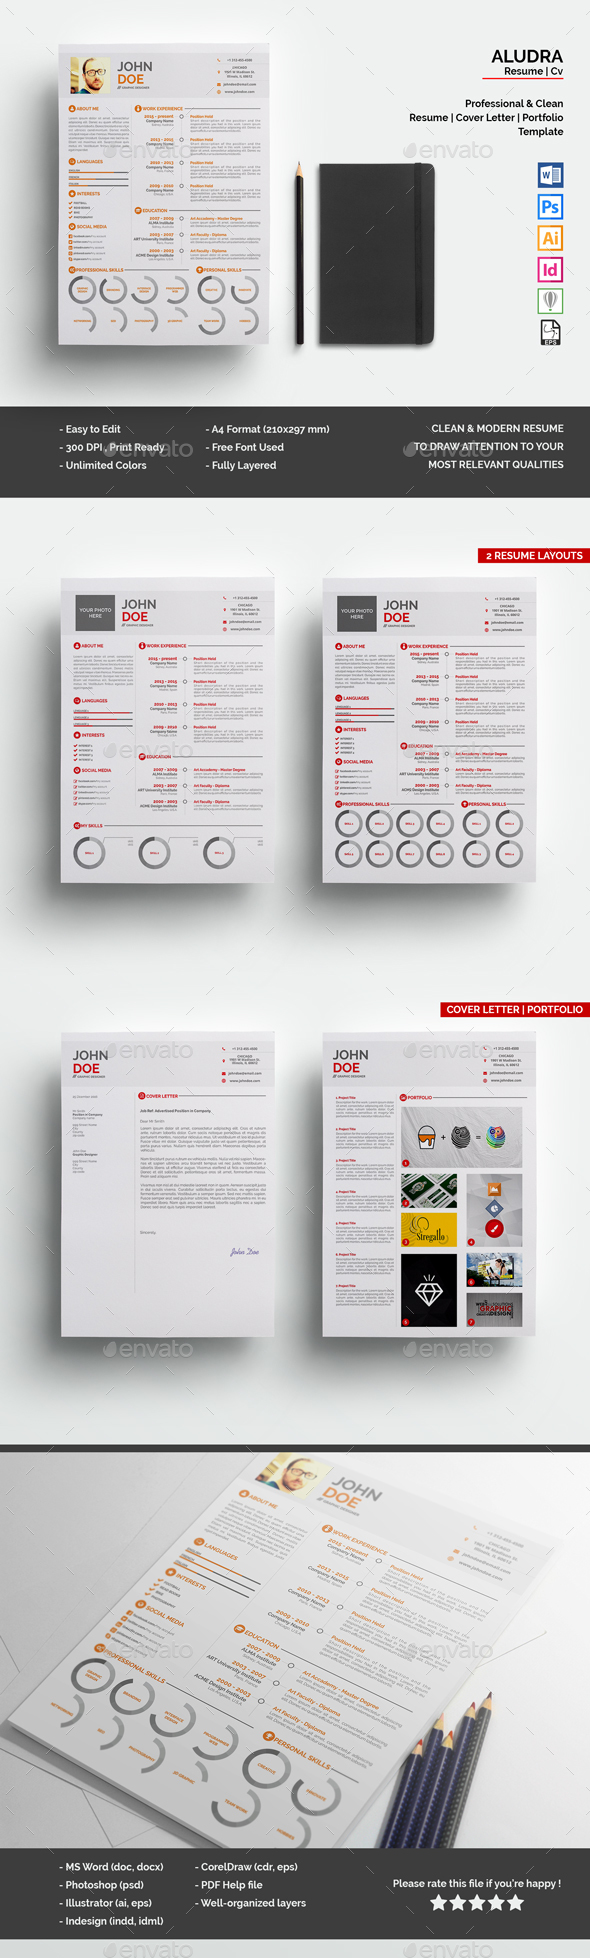 InDesign Simple Graphics, Designs & Templates from GraphicRiver ...